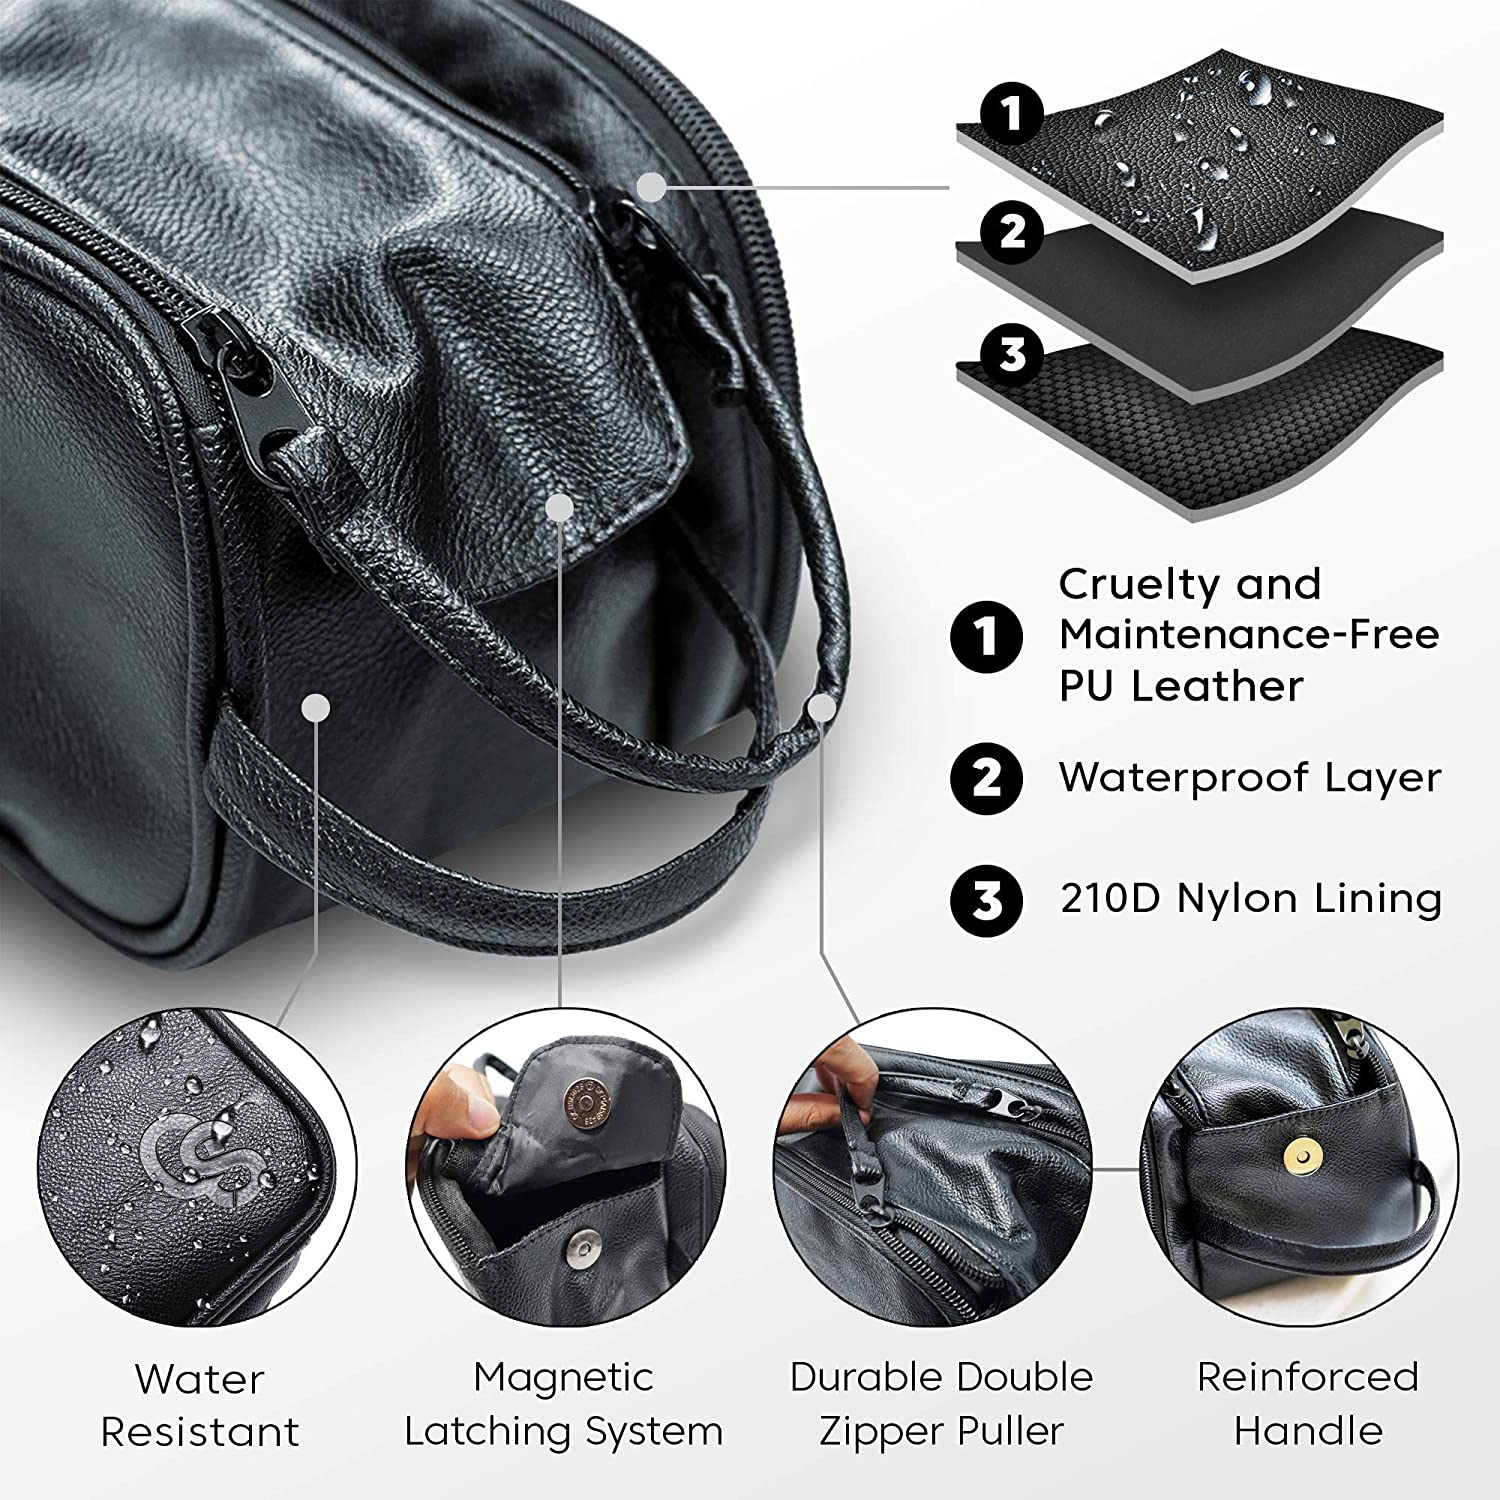 Toiletry Bag for Men or Women - Dopp Kit For Travel. Large Cosmetic and Shaving Bag. Toiletries Organizer PU Leather Bags (Standard, Black) : Beauty